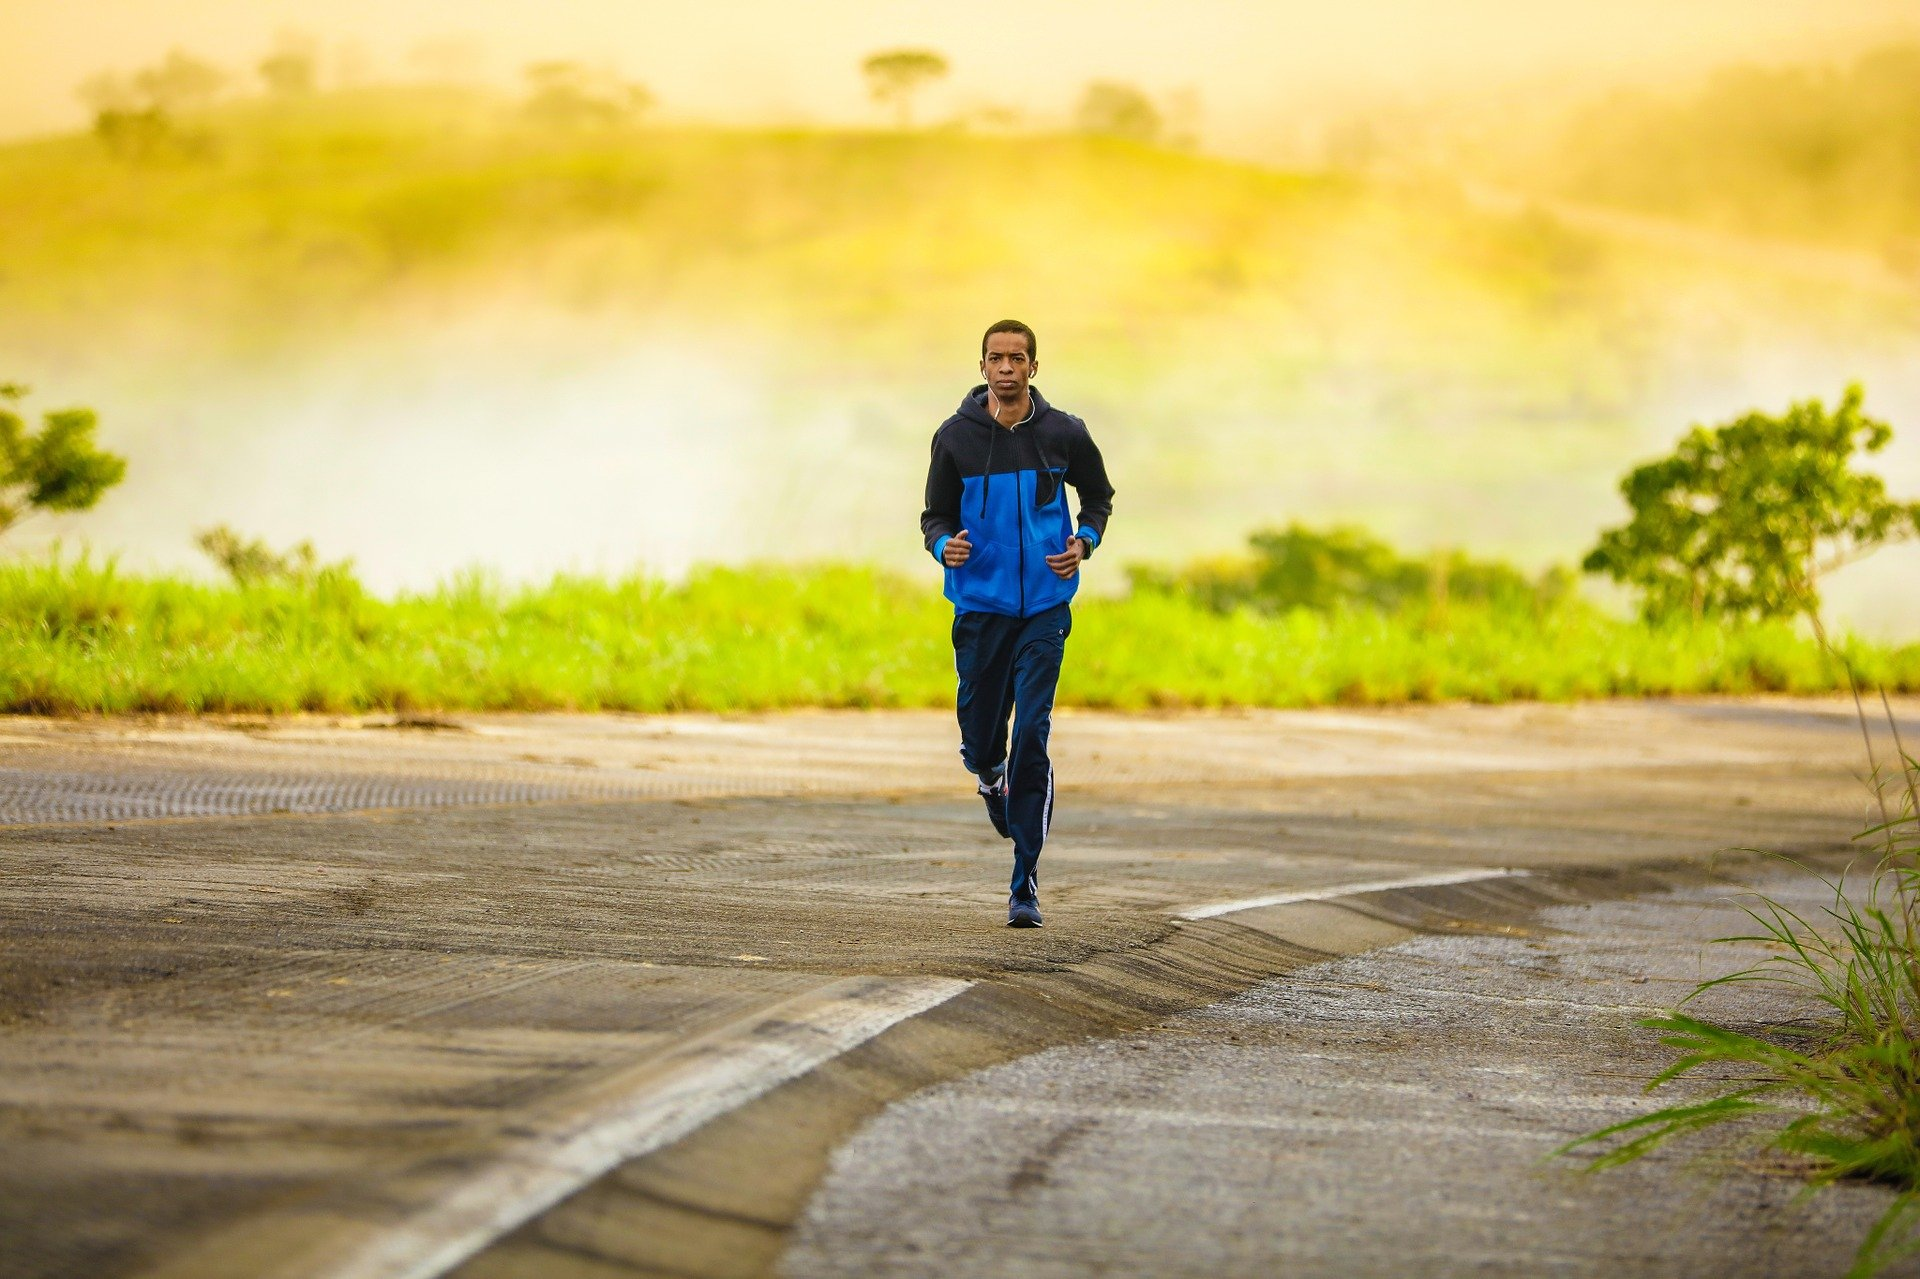 Exercise can help you prevent the onset of diabetes